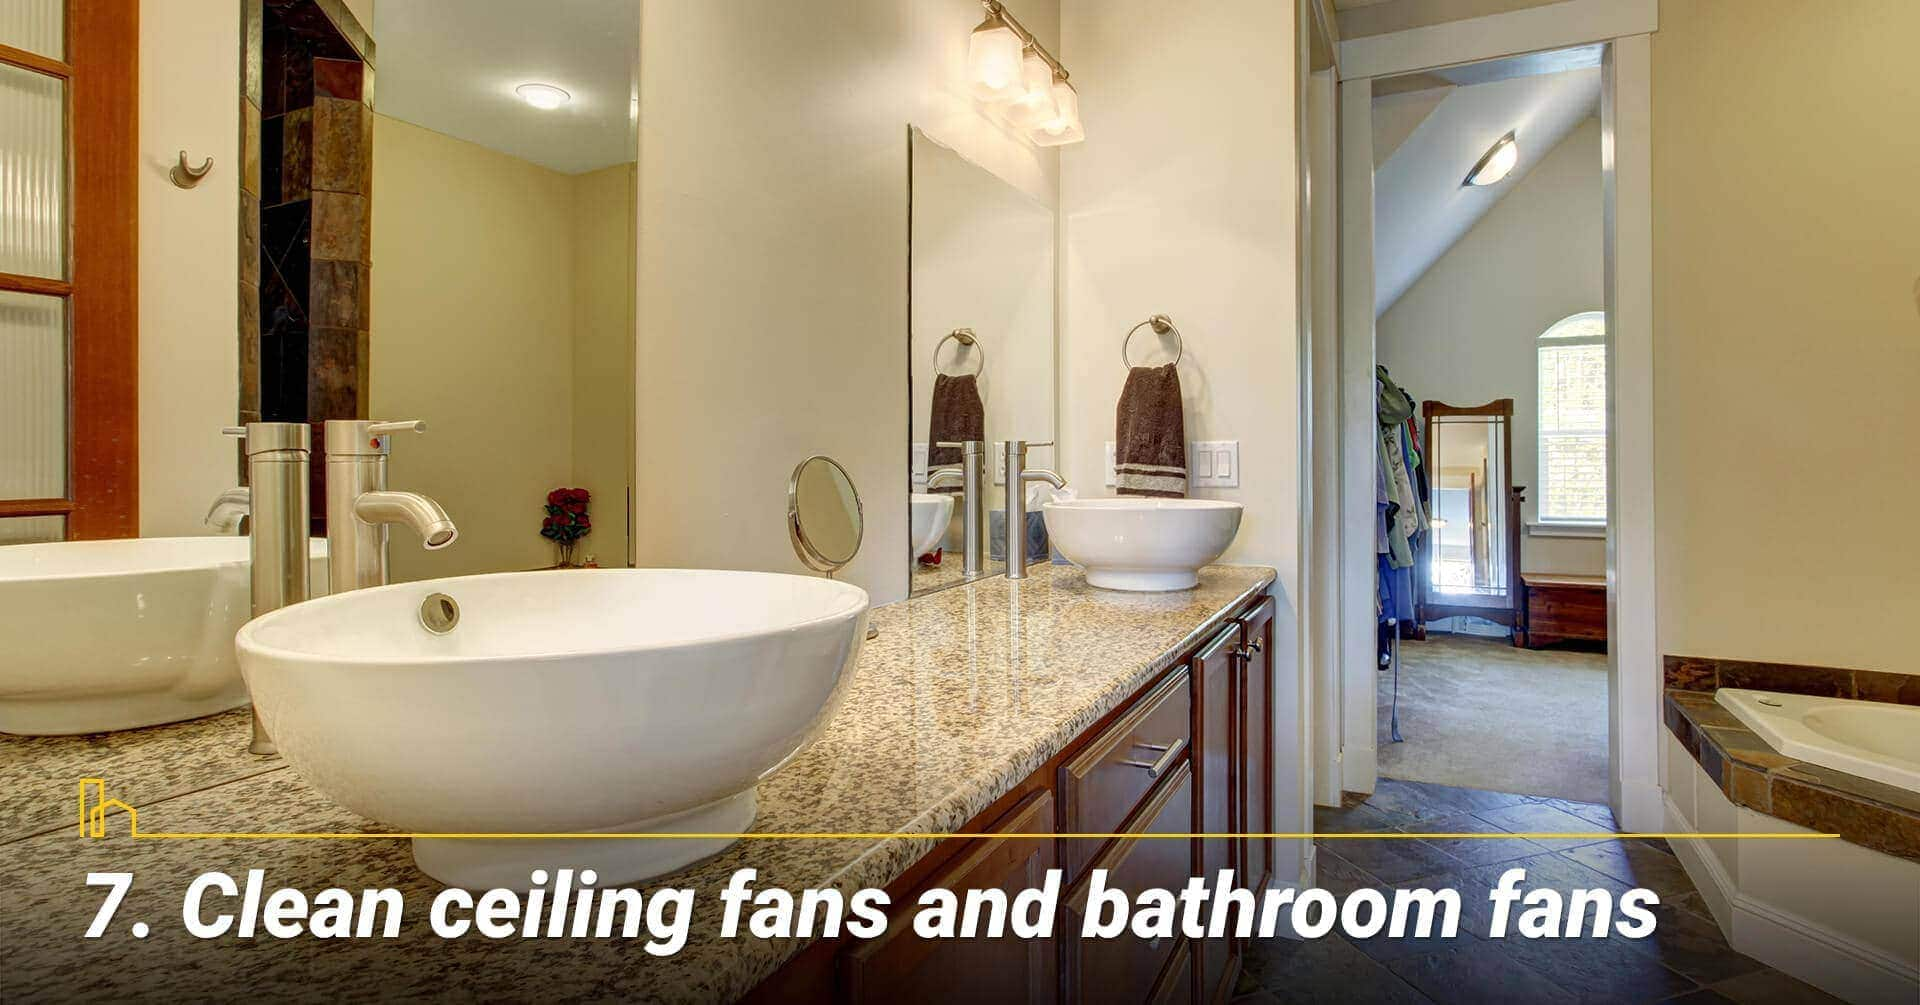 Clean ceiling fans and bathroom fans